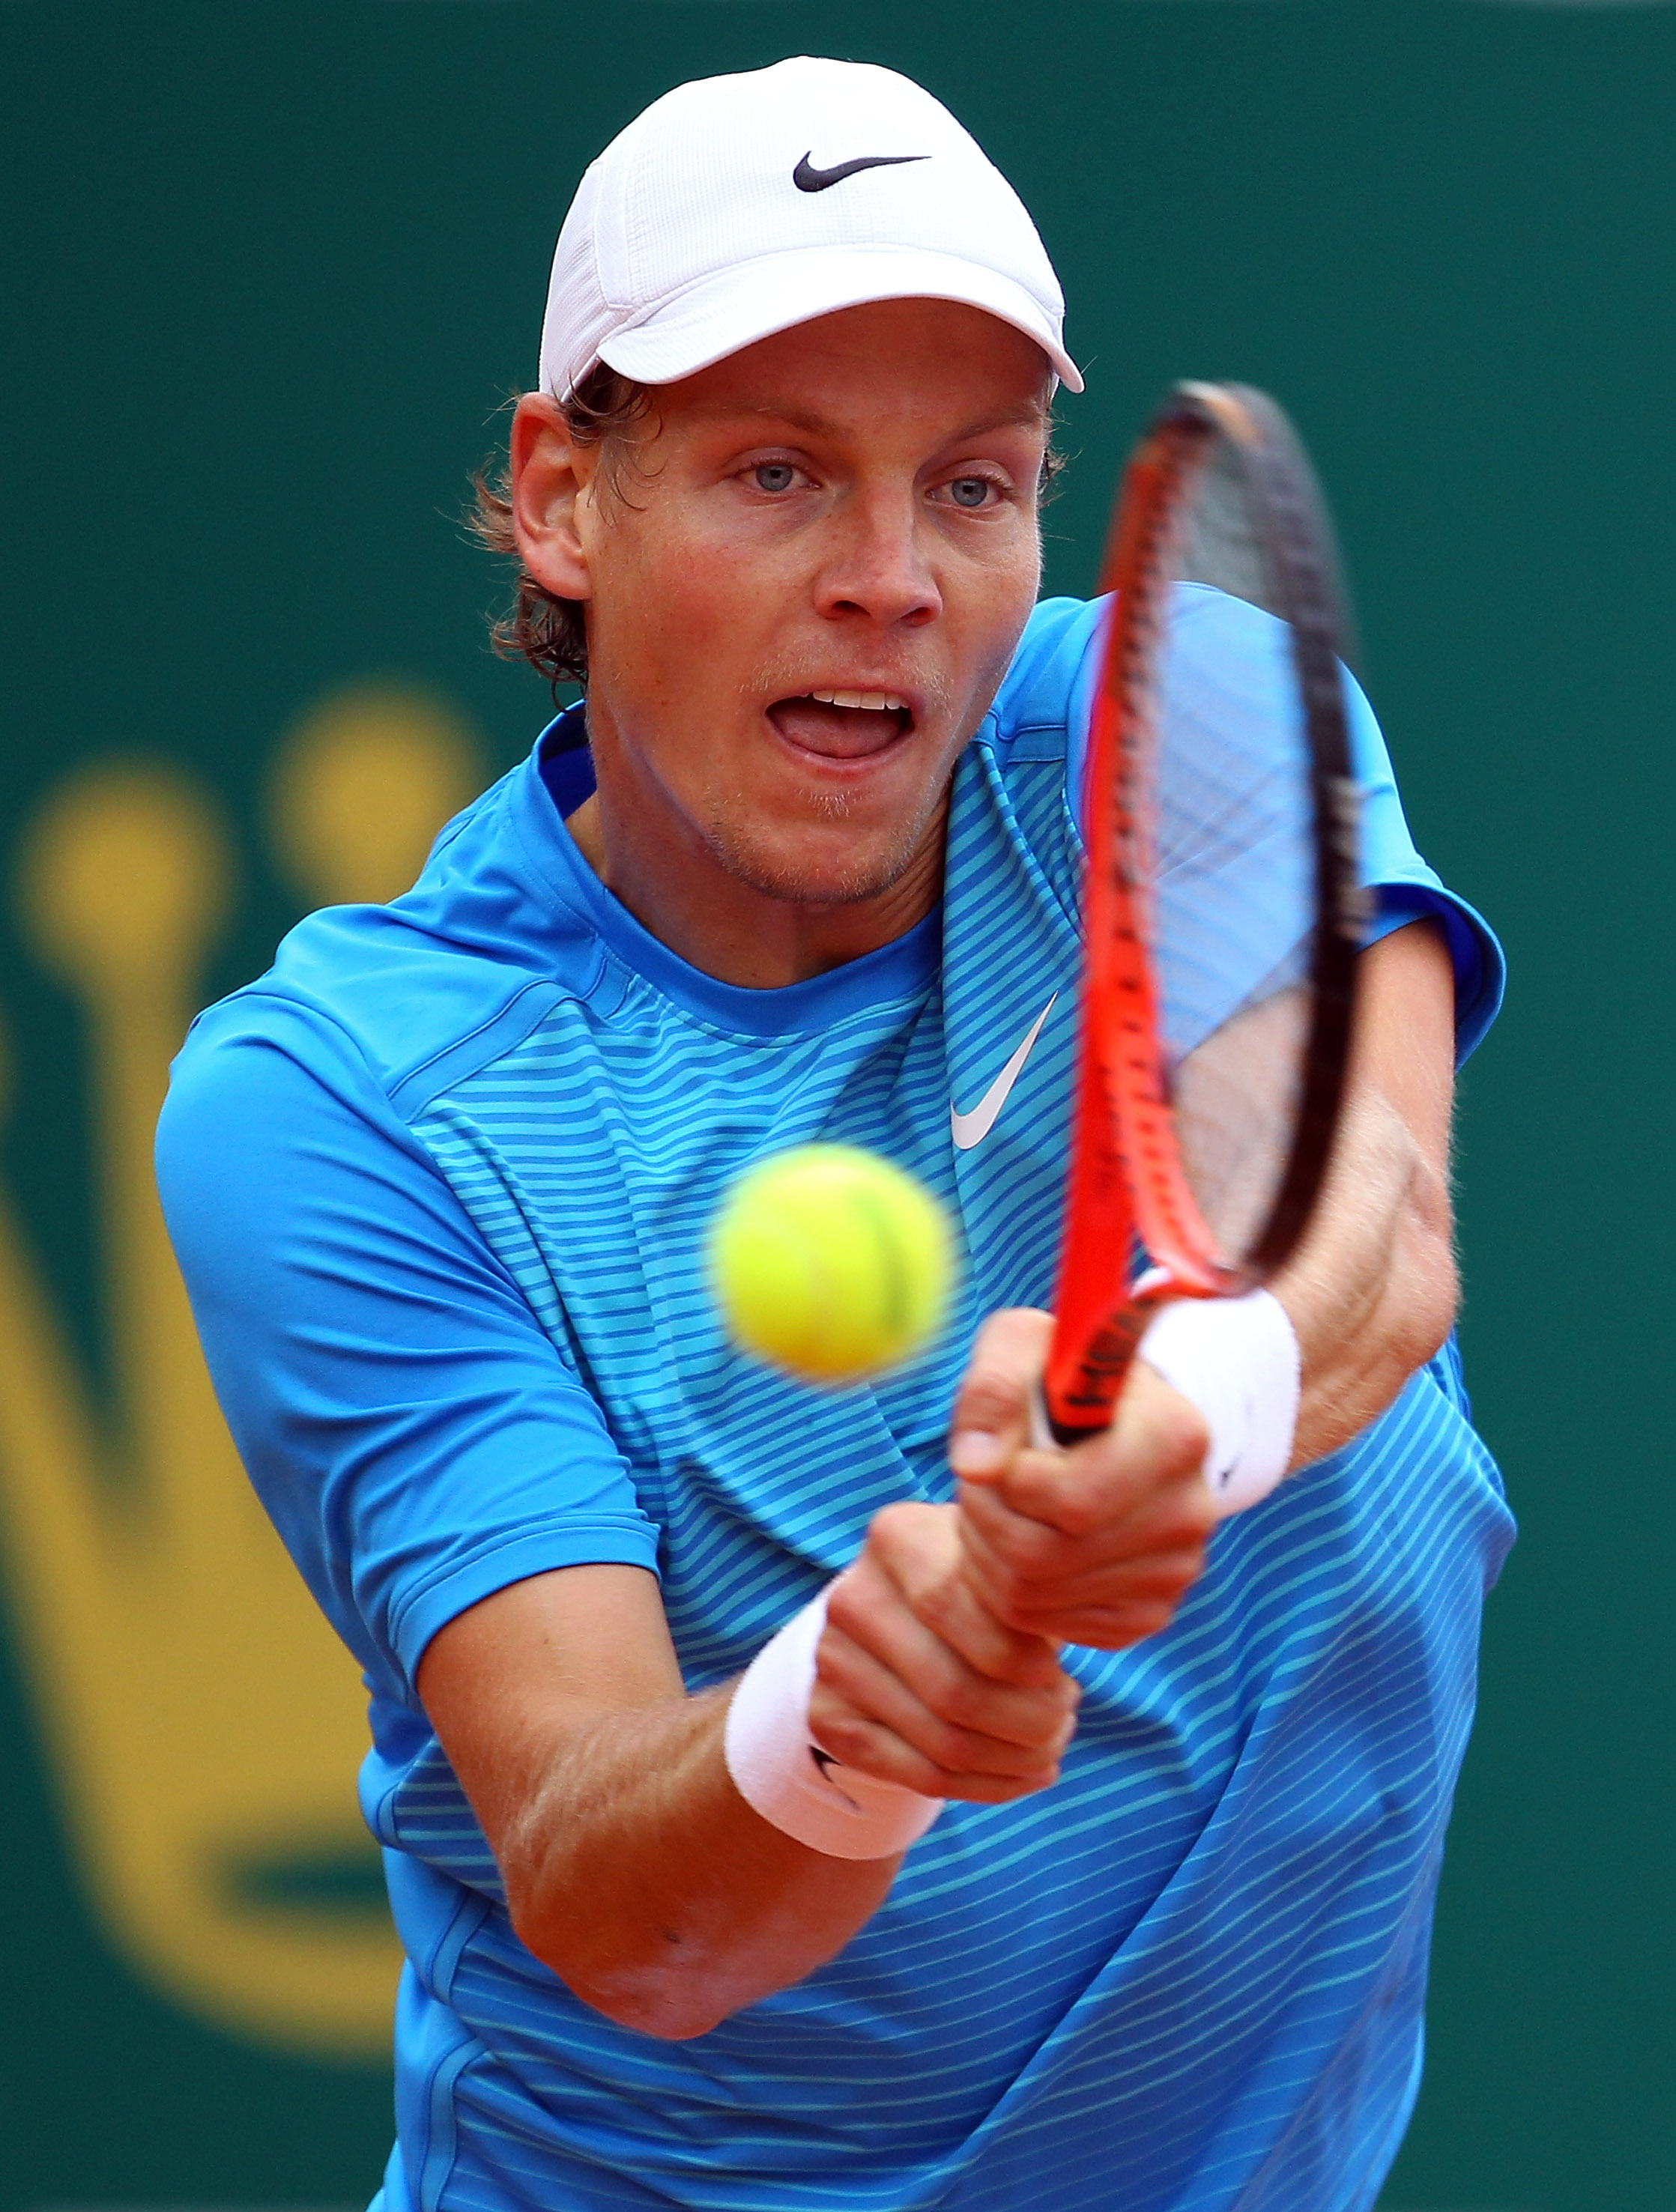 MONACO - APRIL 14:  Tomas Berdych of Czech Republic in action against Ivan Ljubicic of Croatia during Day Five of the ATP Masters Series Tennis at the Monte Carlo Country Club on April 14, 2011 in Monte Carlo, Monaco.  (Photo by Julian Finney/Getty Images